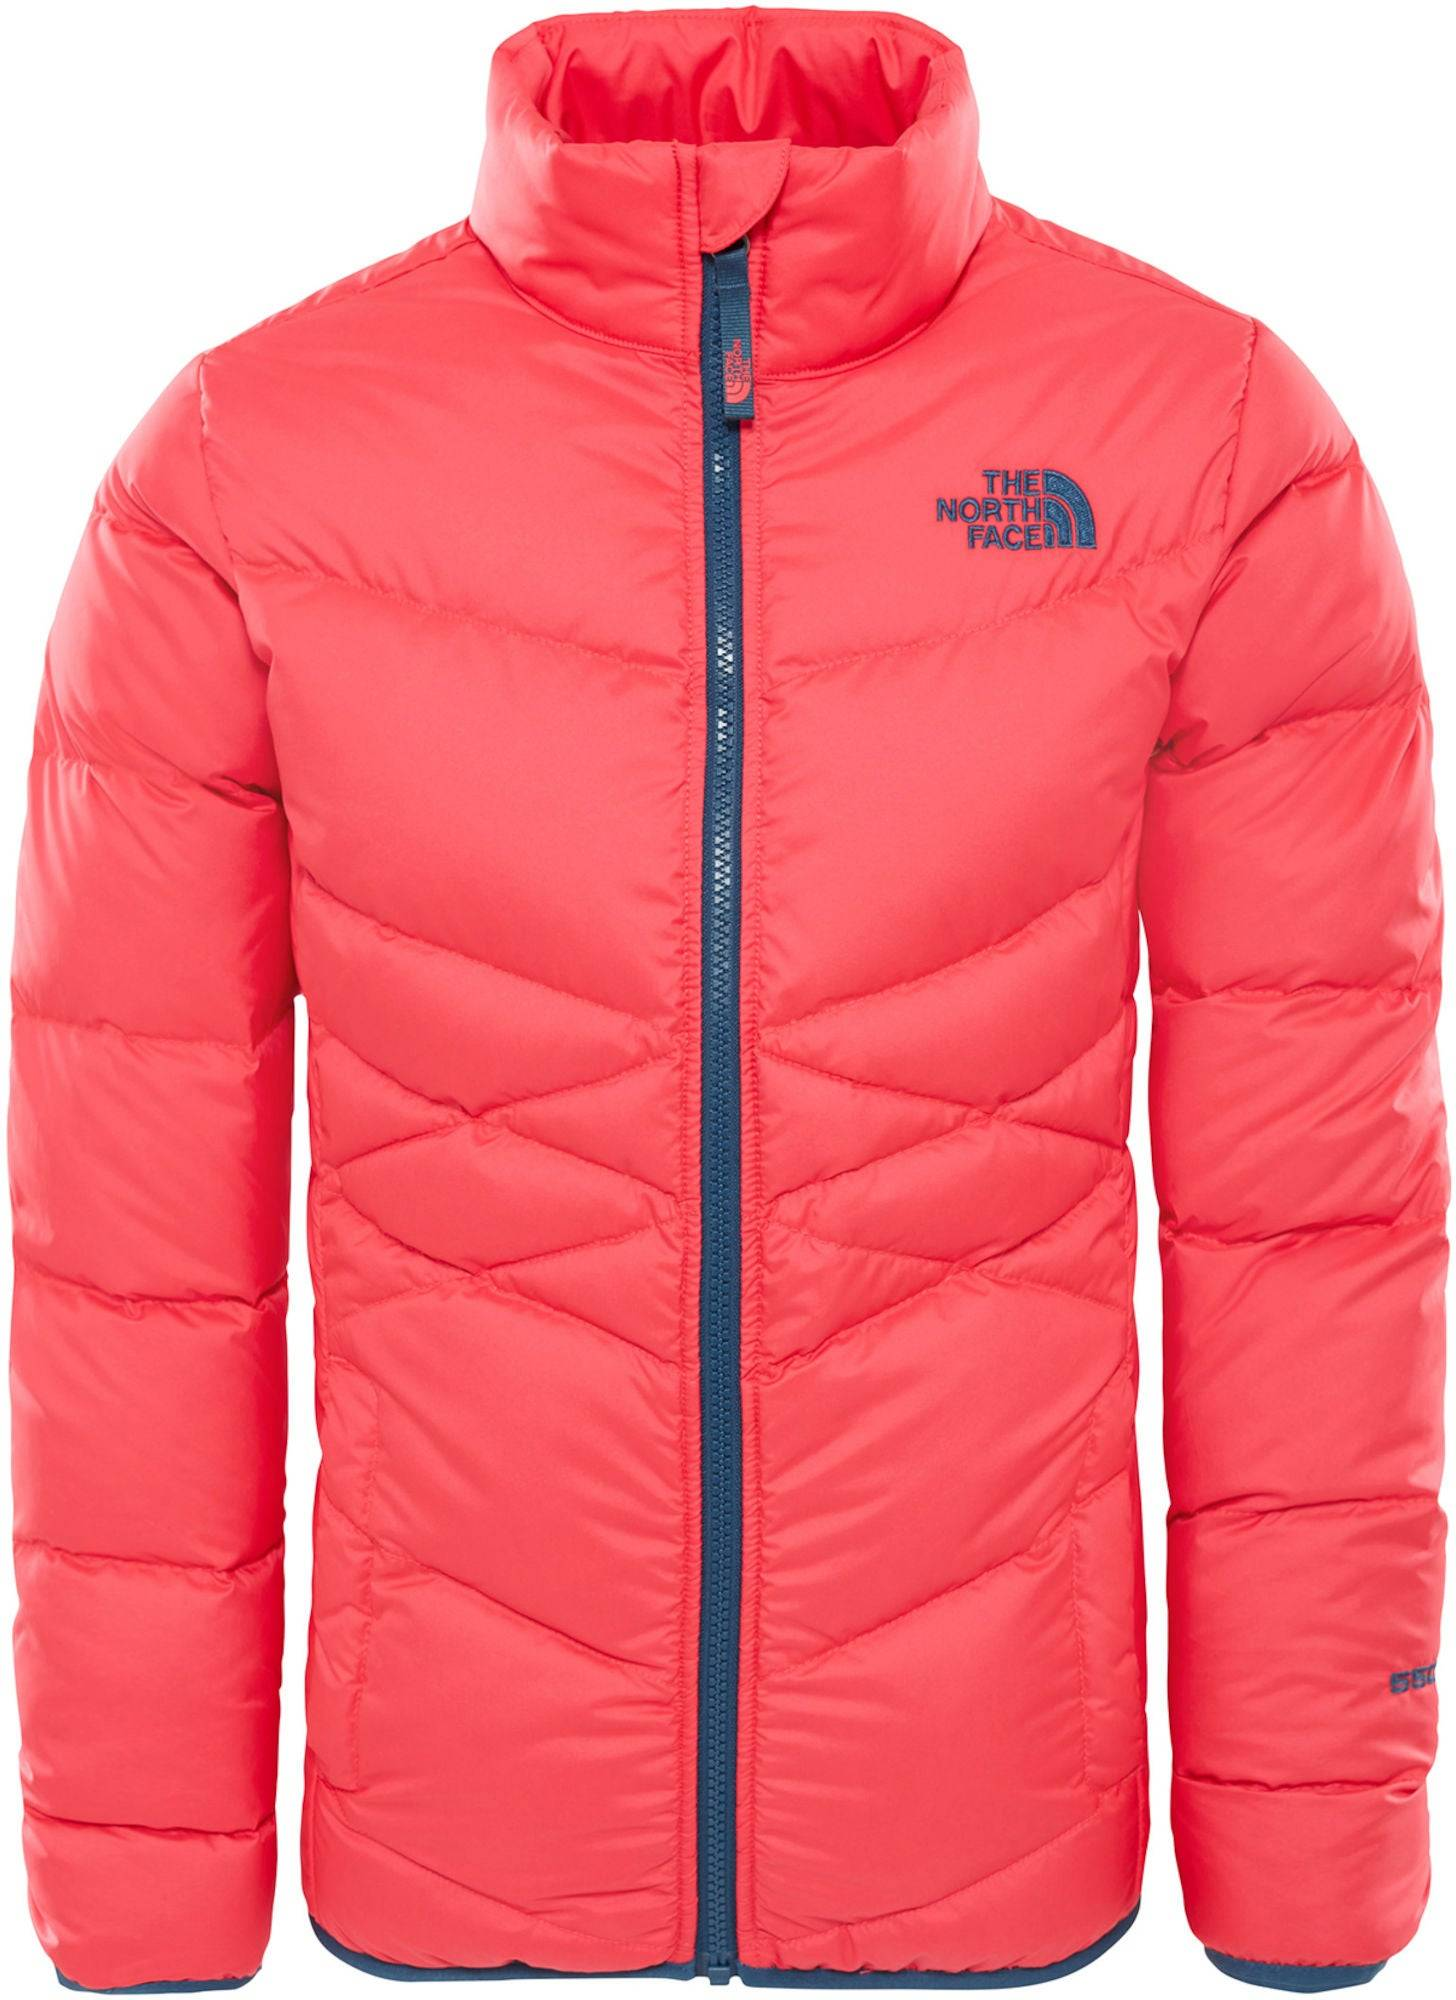 The North Face Andes Down Jacka, Atomic Pink XS